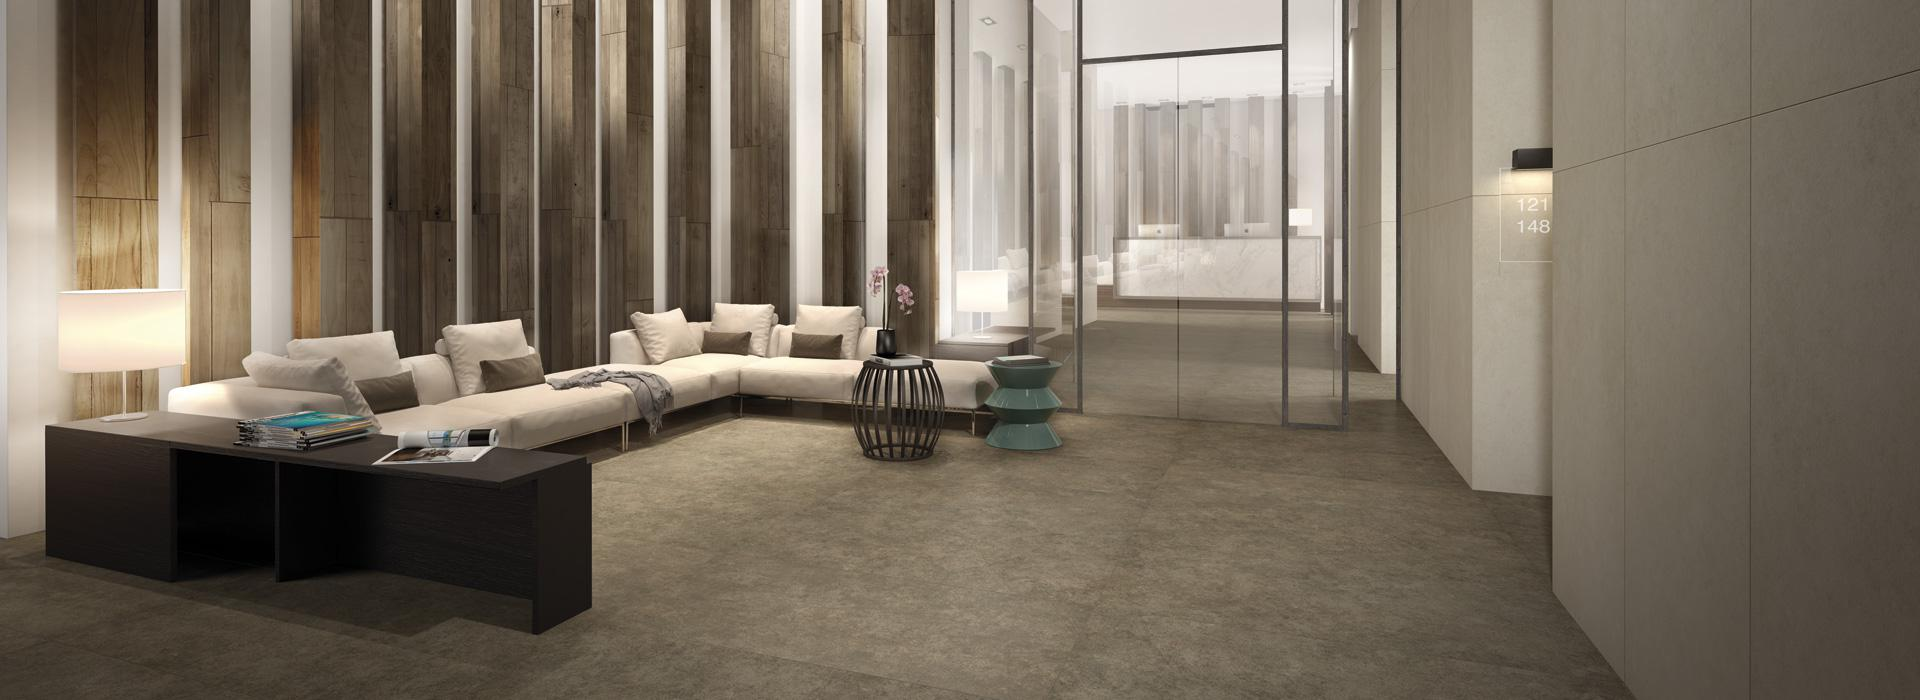 Pietre Rock Porcelain Wall And Floor Coverings That Look